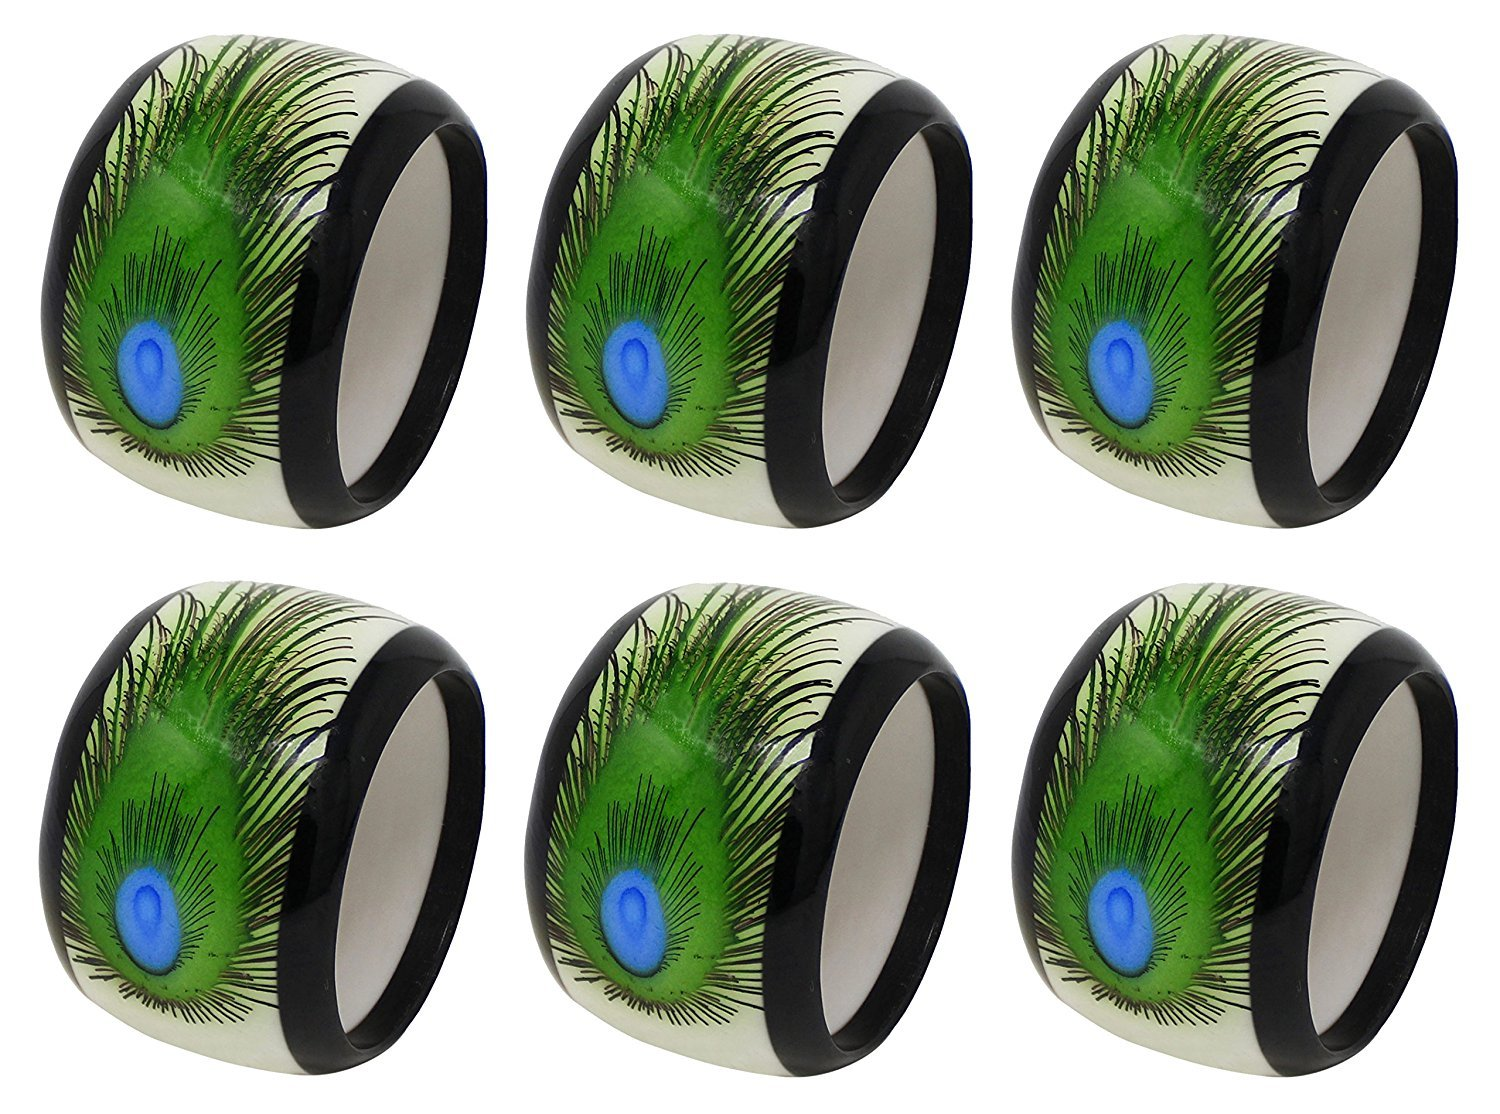 Handmade Round Colorful Napkin Rings Holder for Dinning Table Parties Everyday, Set of 12 by AUB